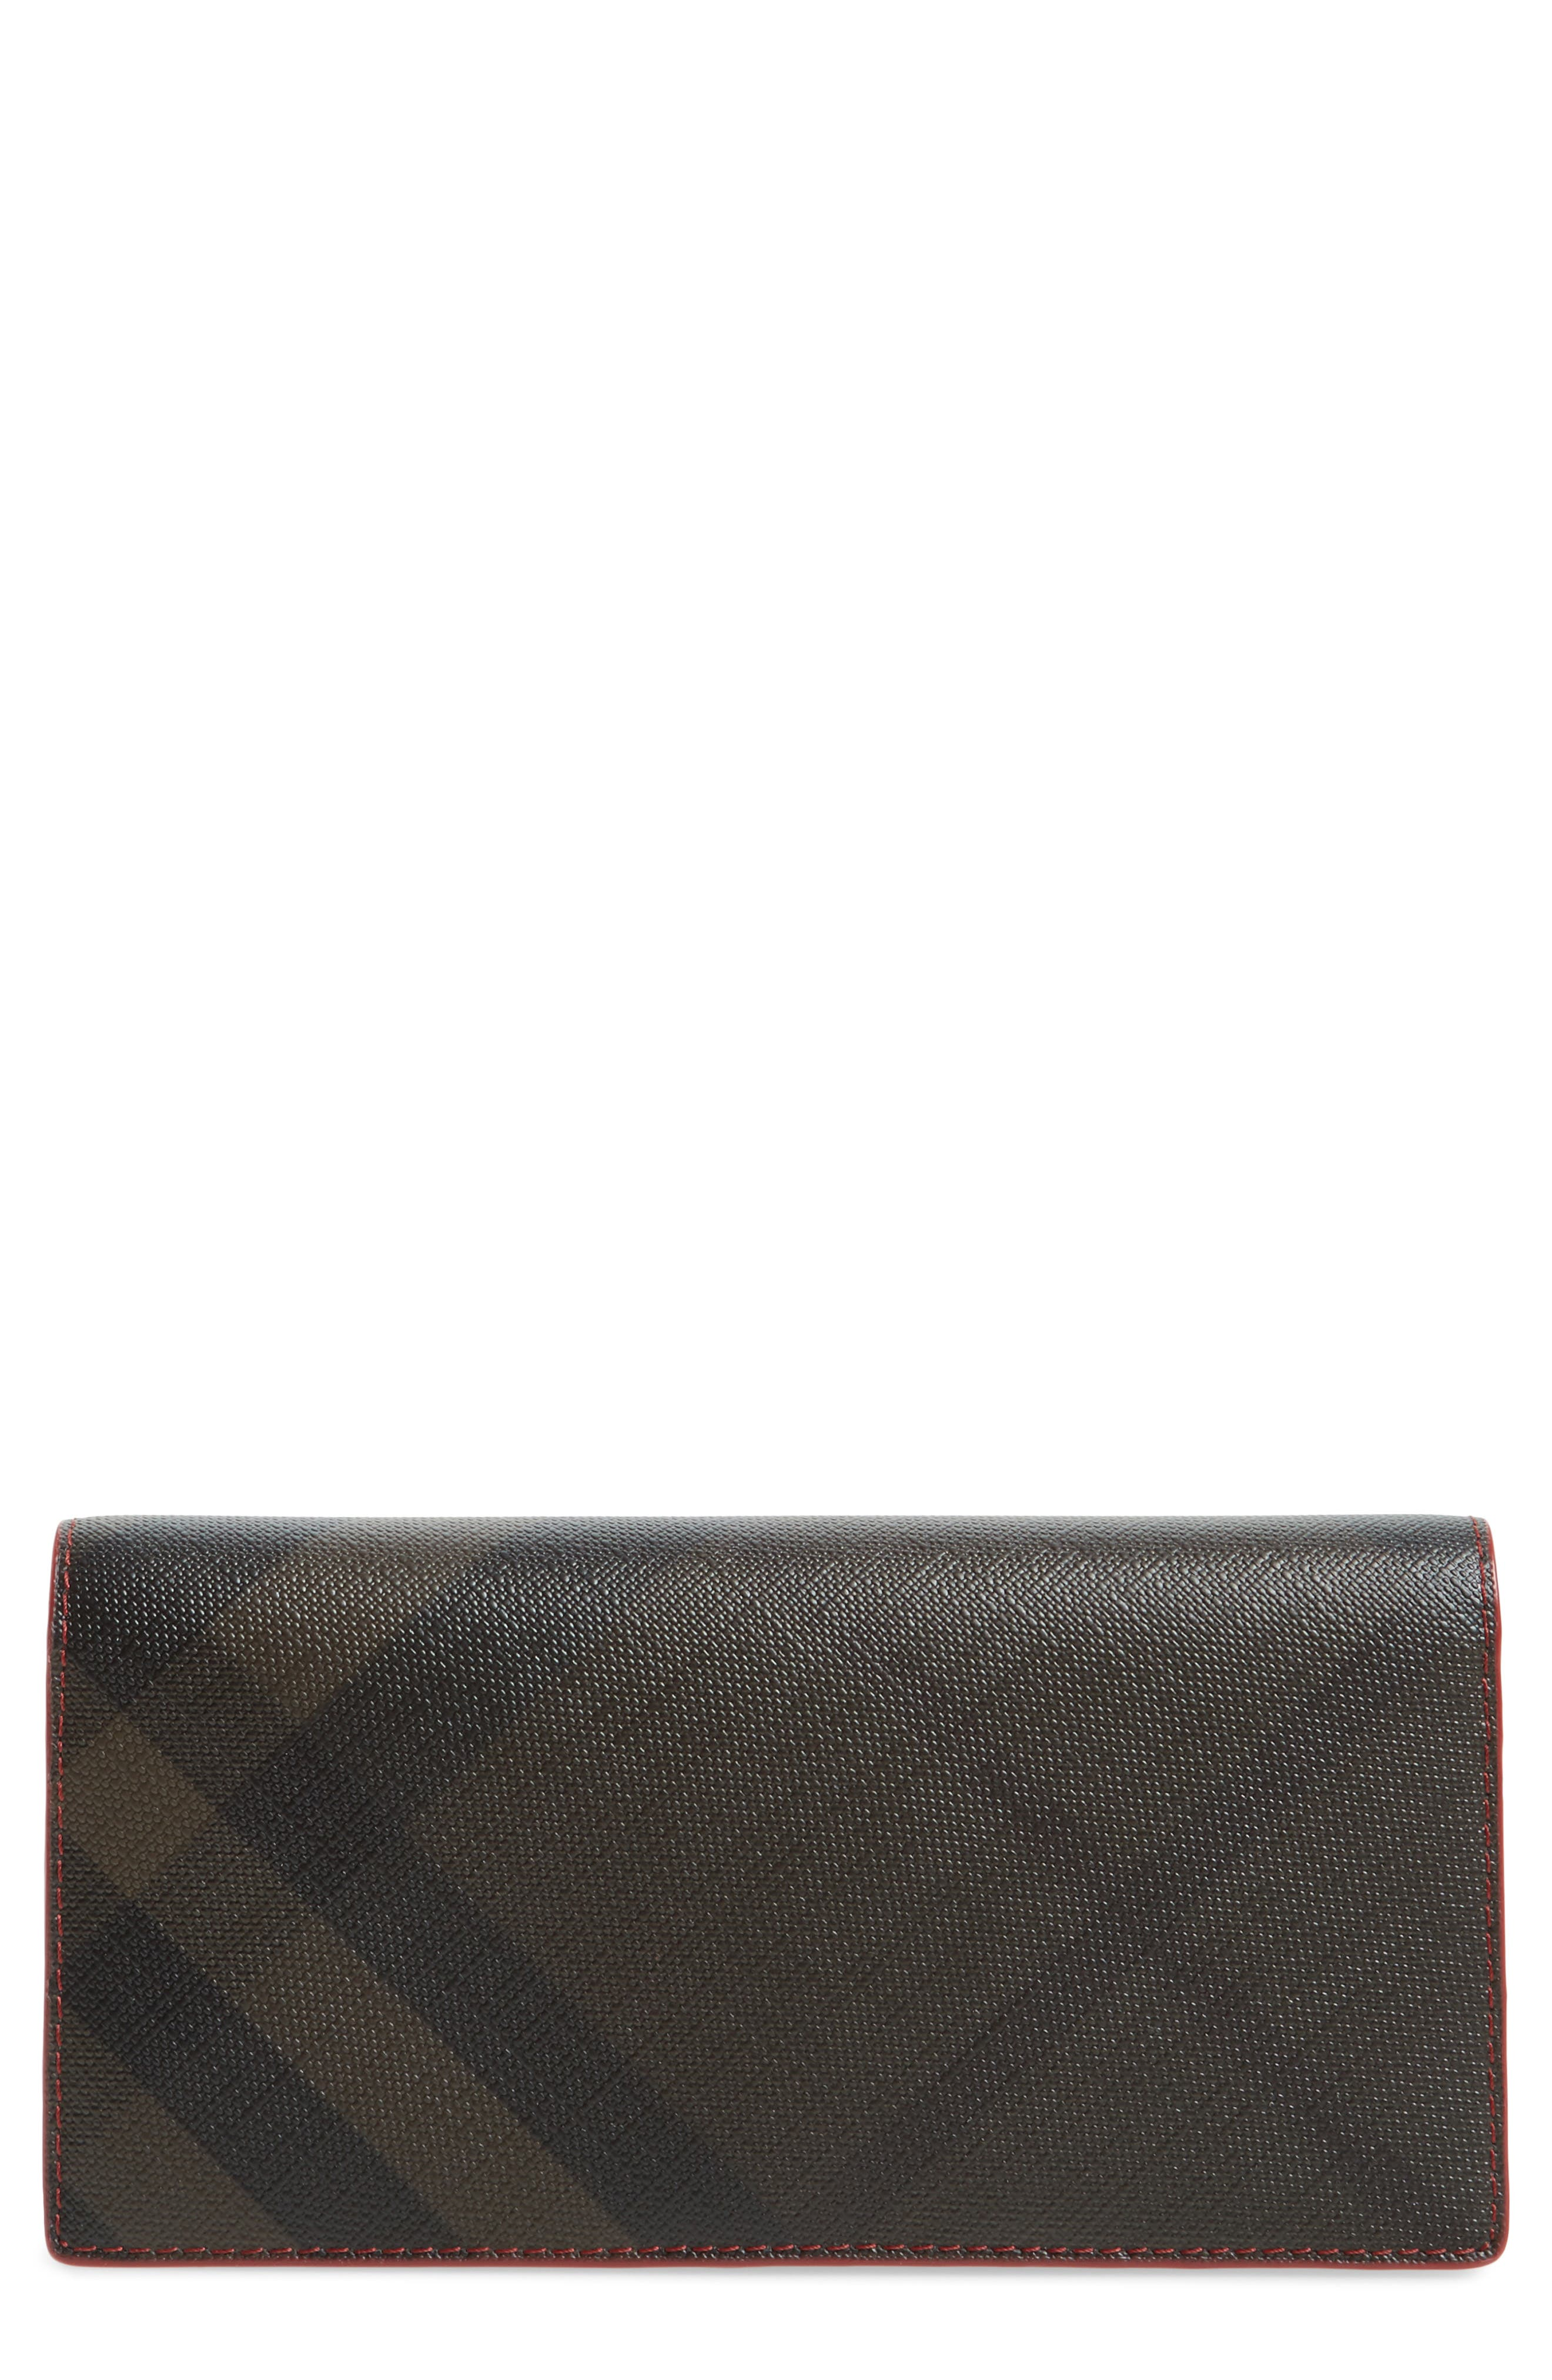 Check Wallet,                             Main thumbnail 1, color,                             Chocolate/ Red